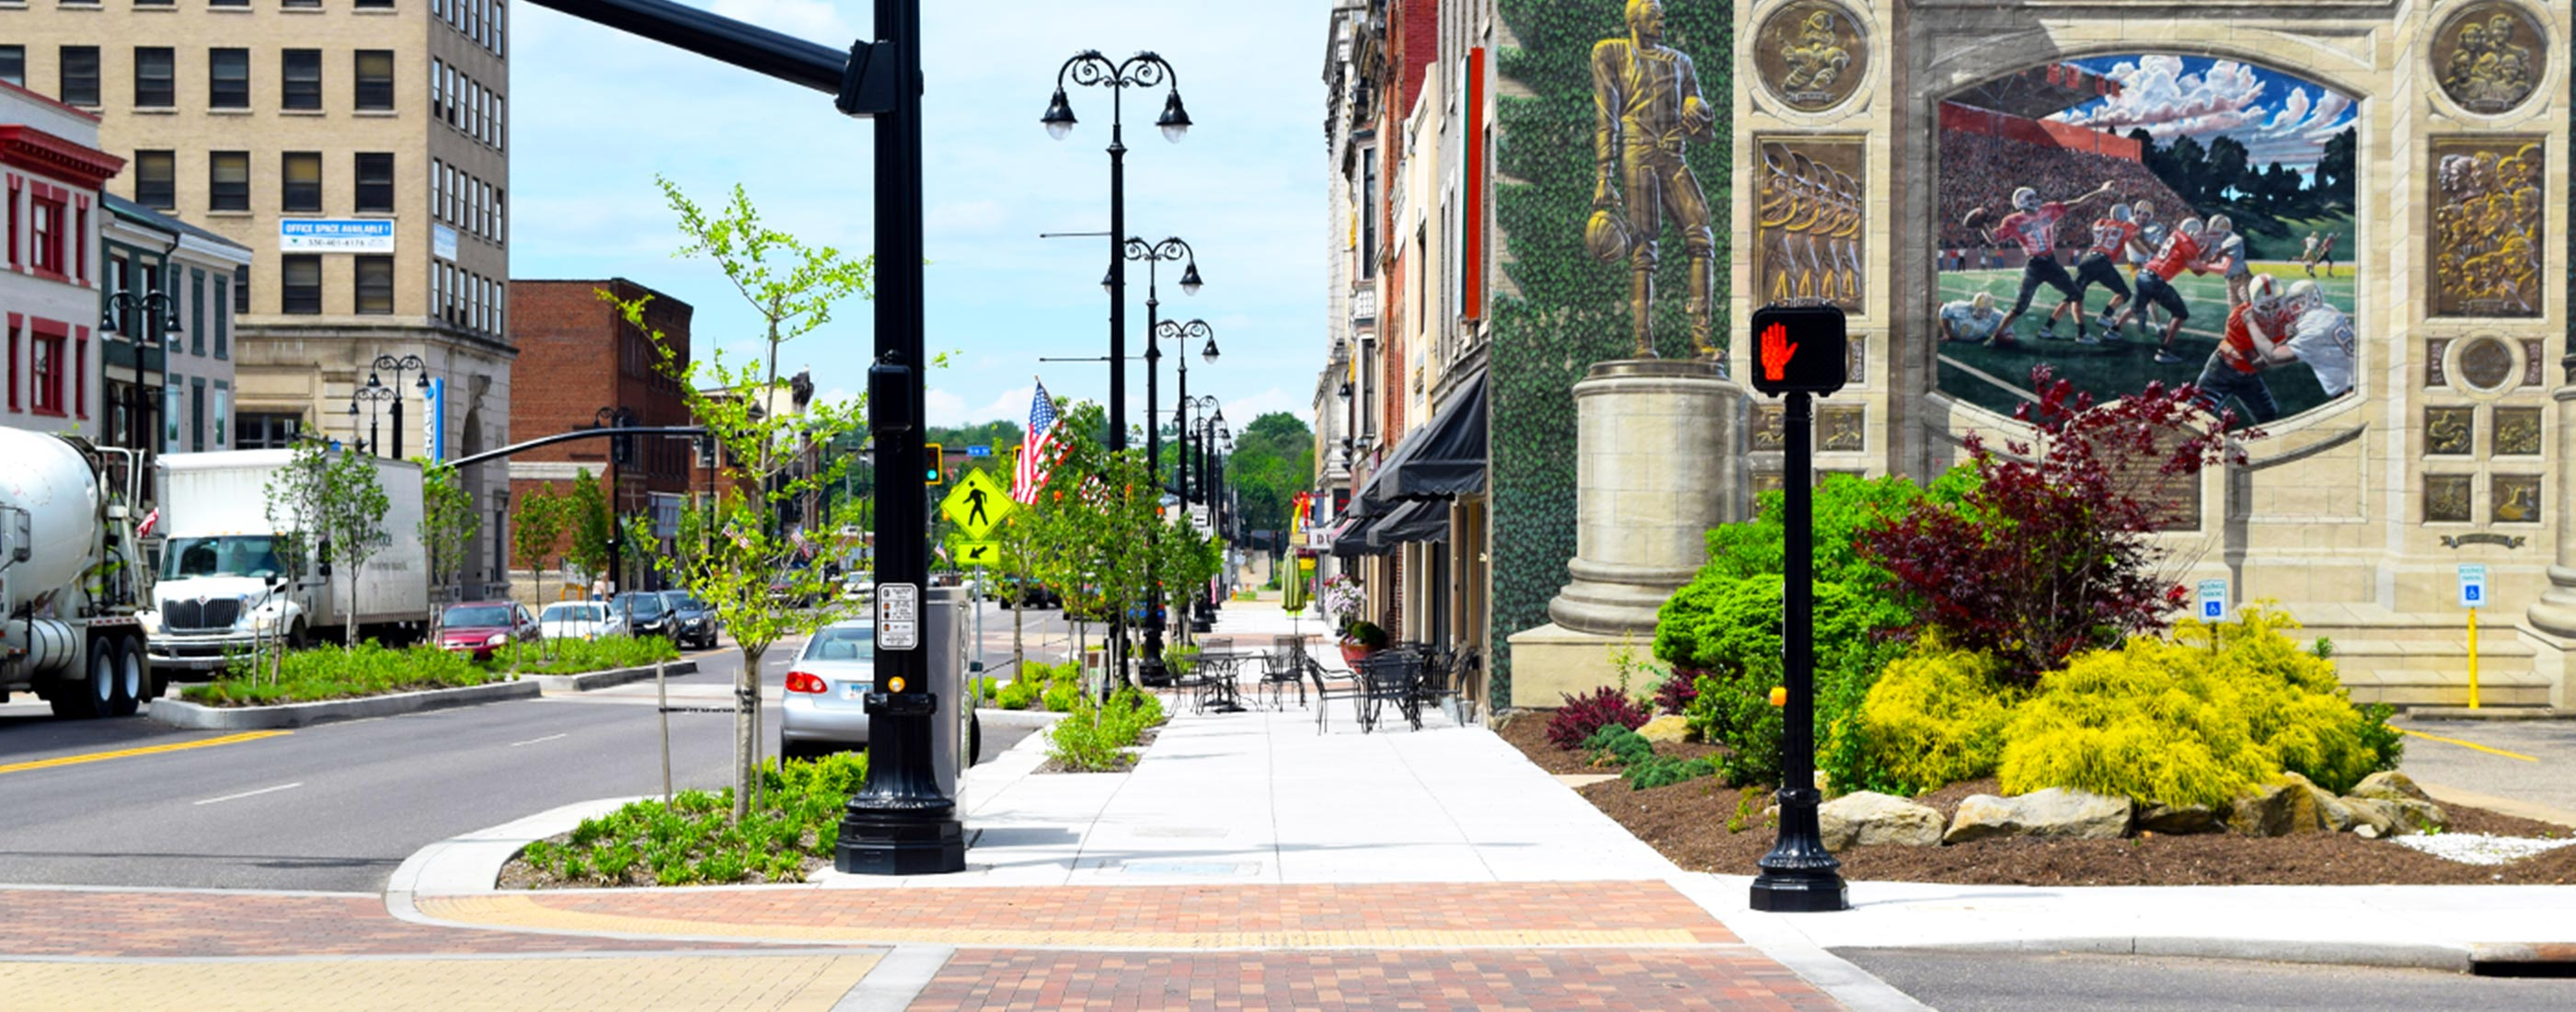 Pedestrian crossing 1 Massillon streetscape